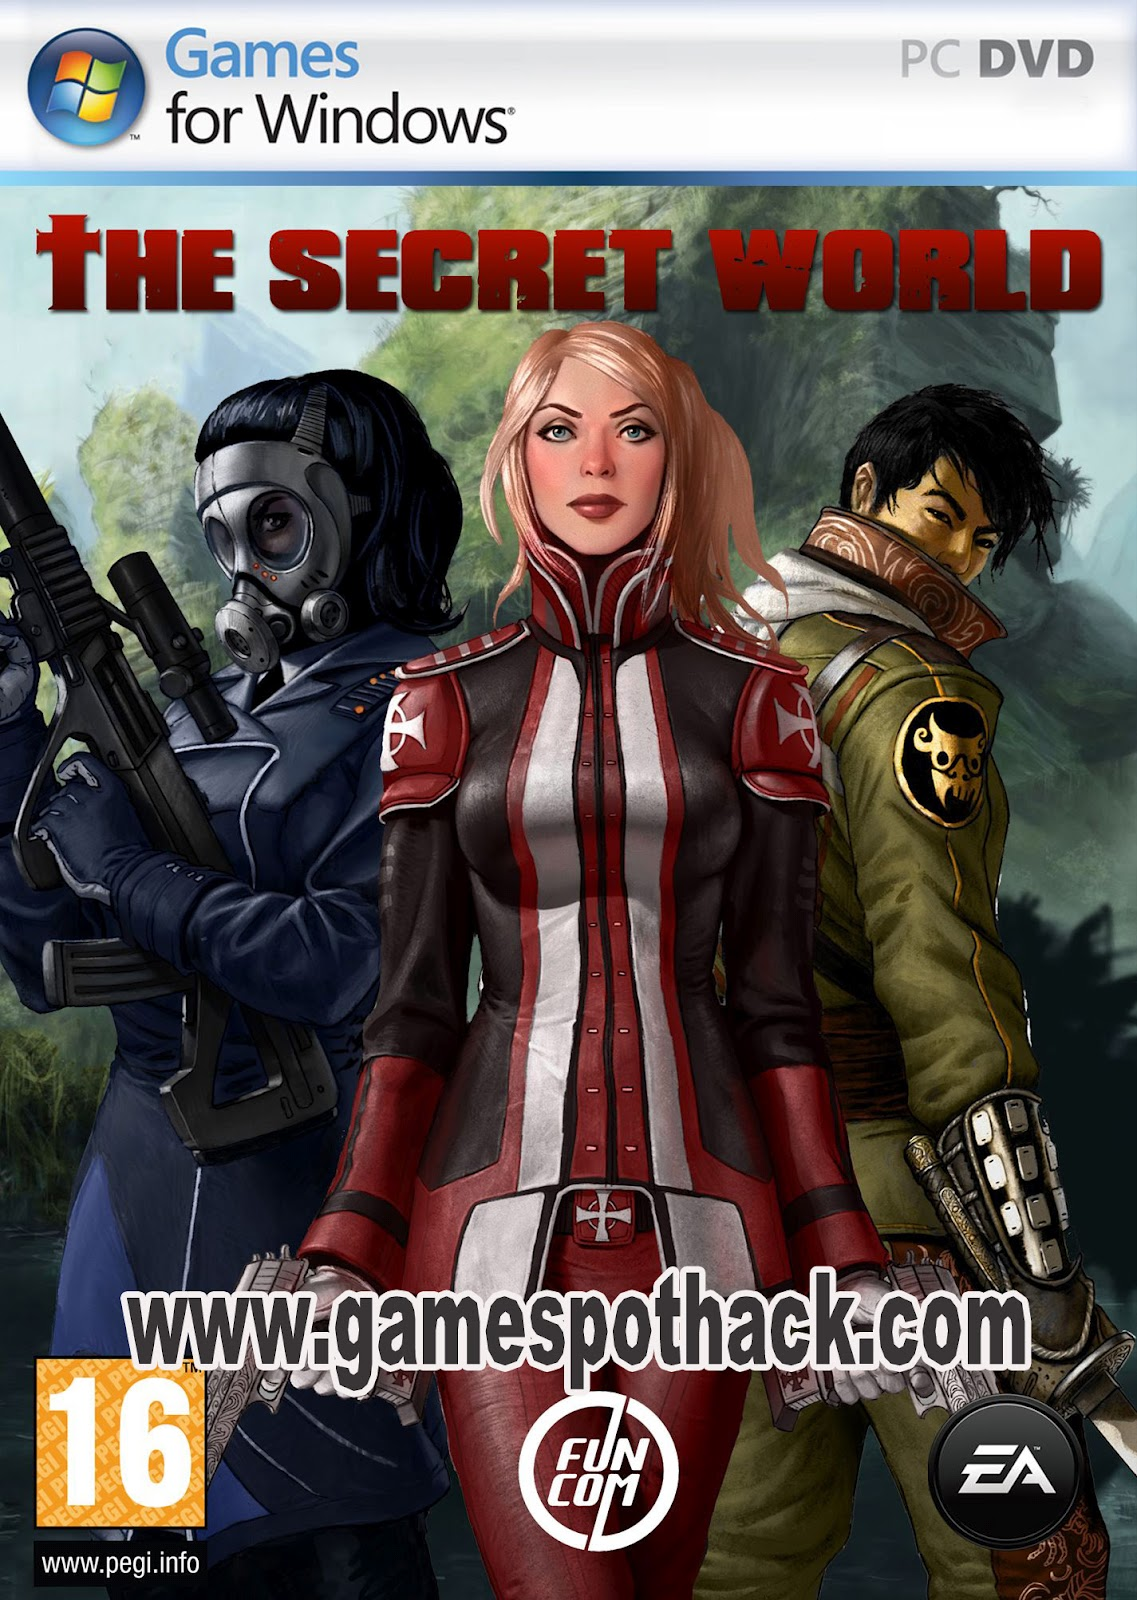 Download the secret world game tpb